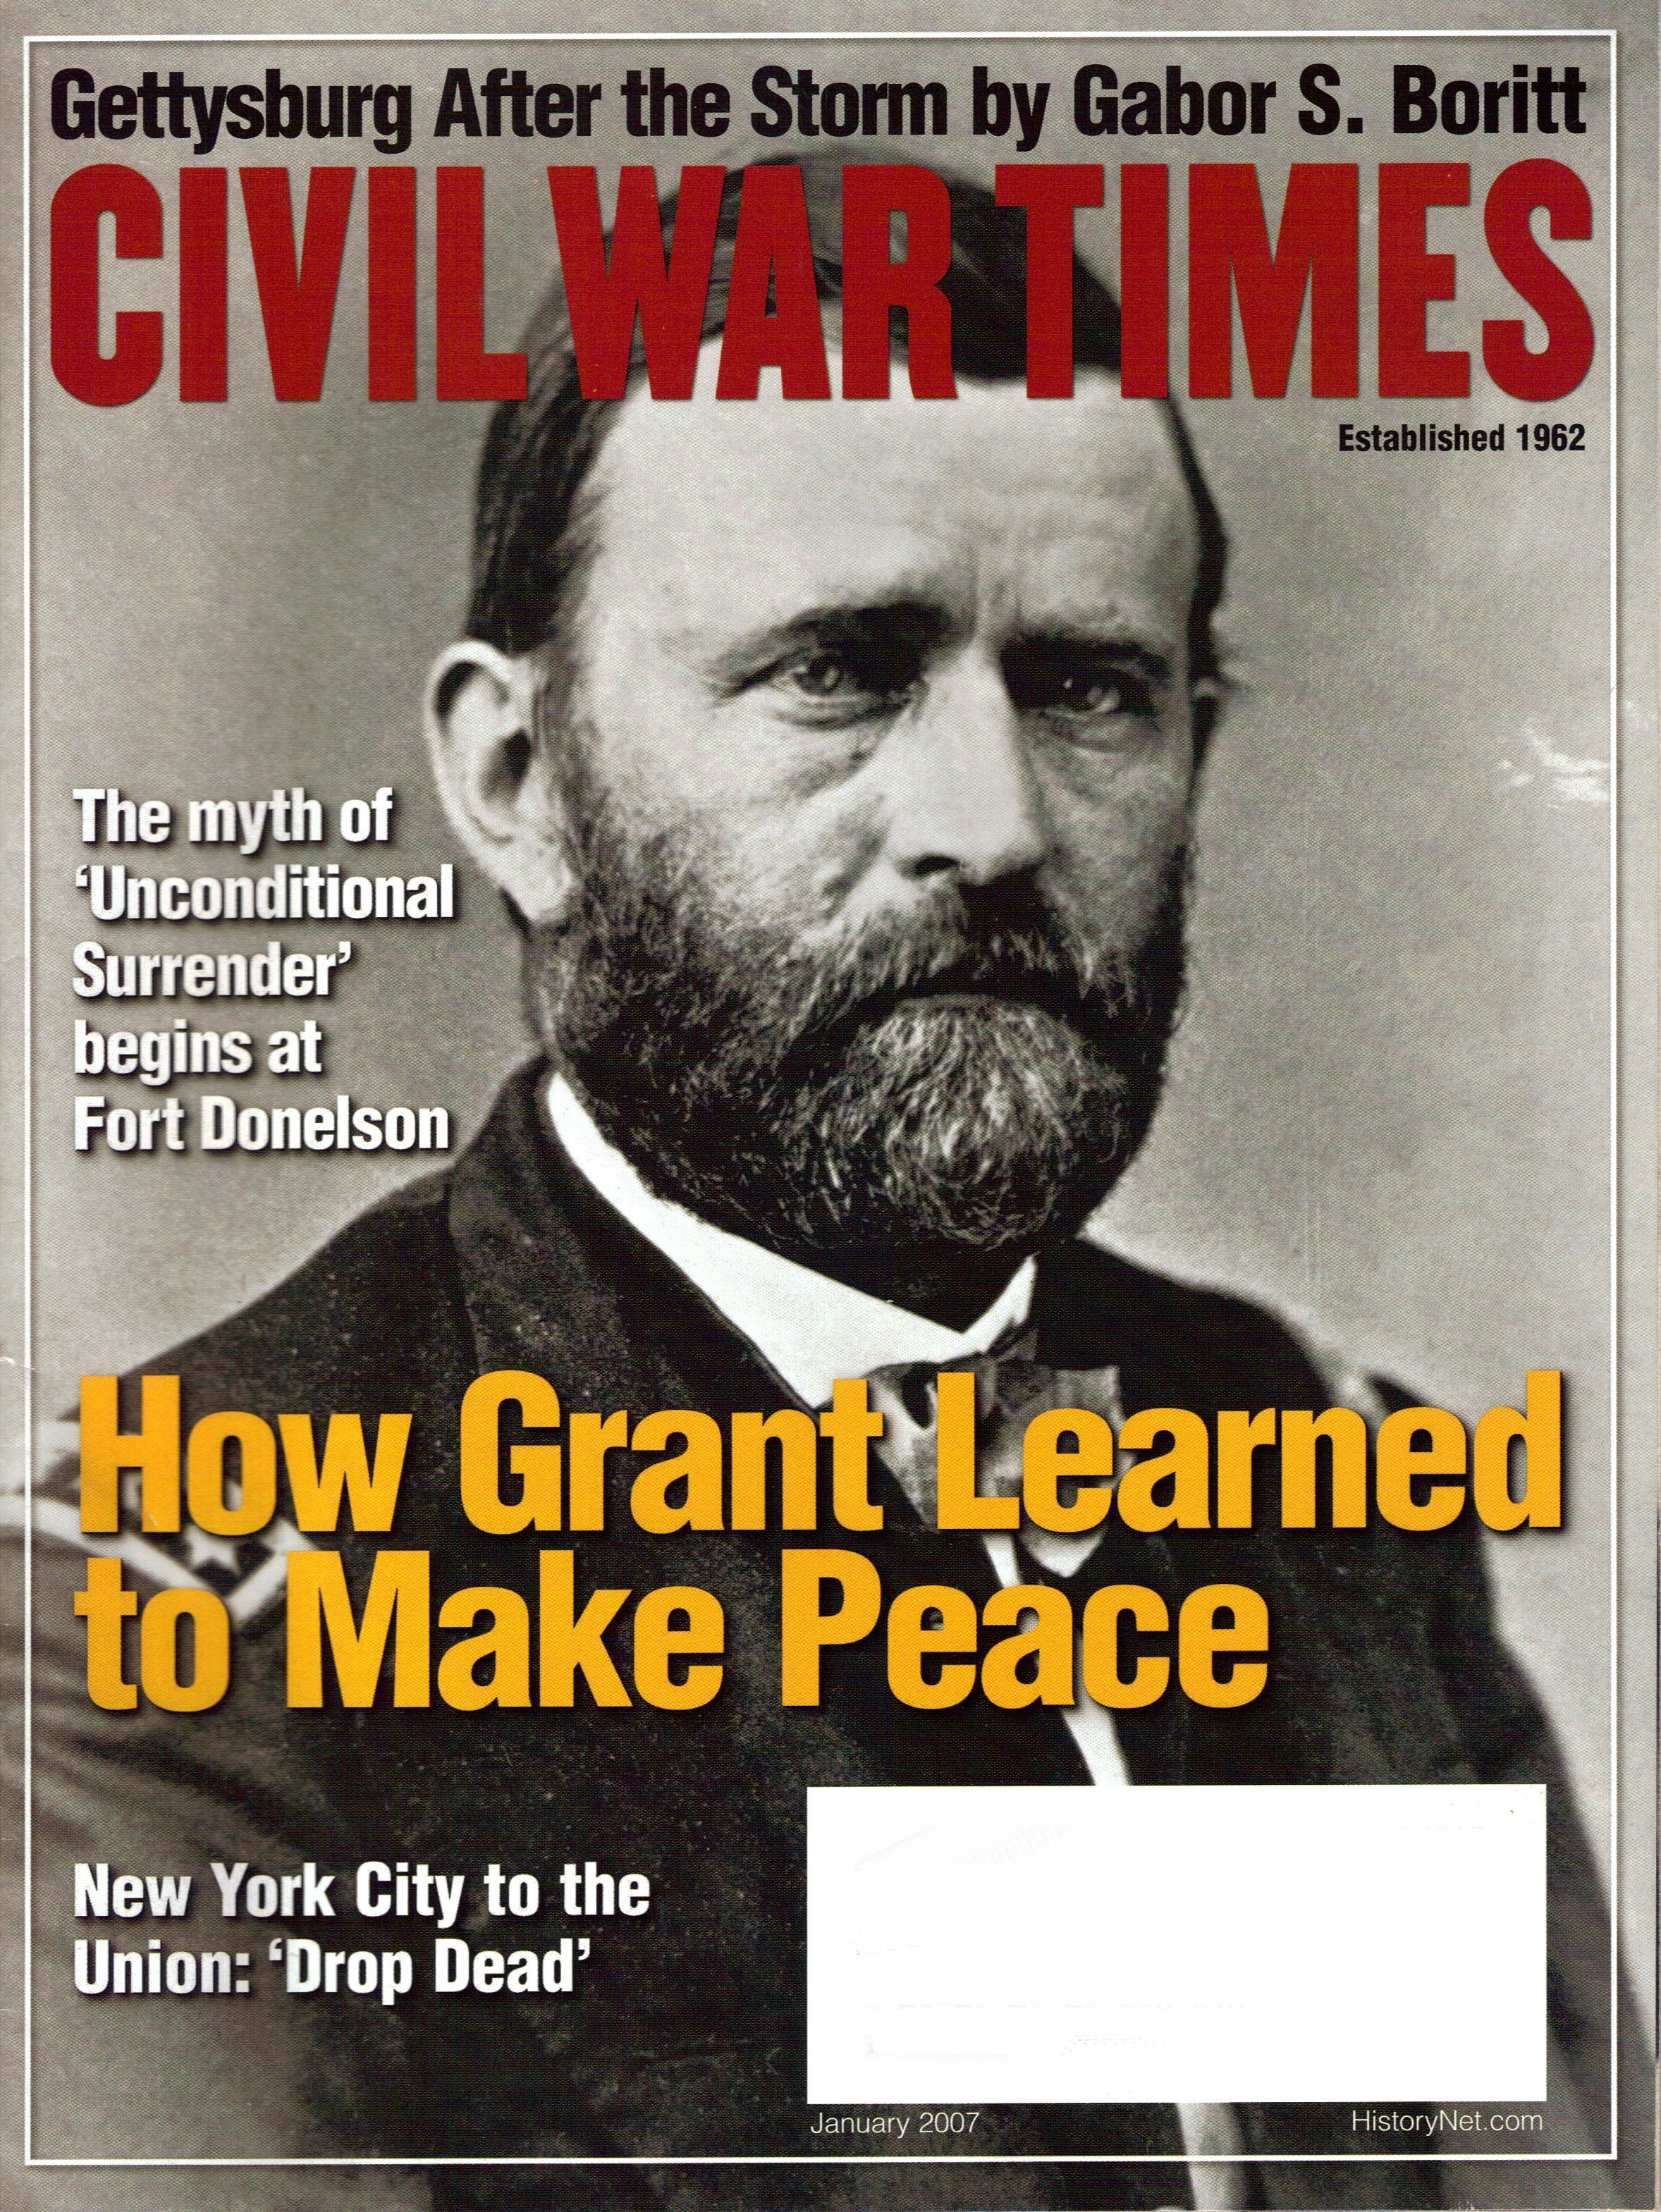 Civil War Times, Volume 45, Number 10 (January 2007)